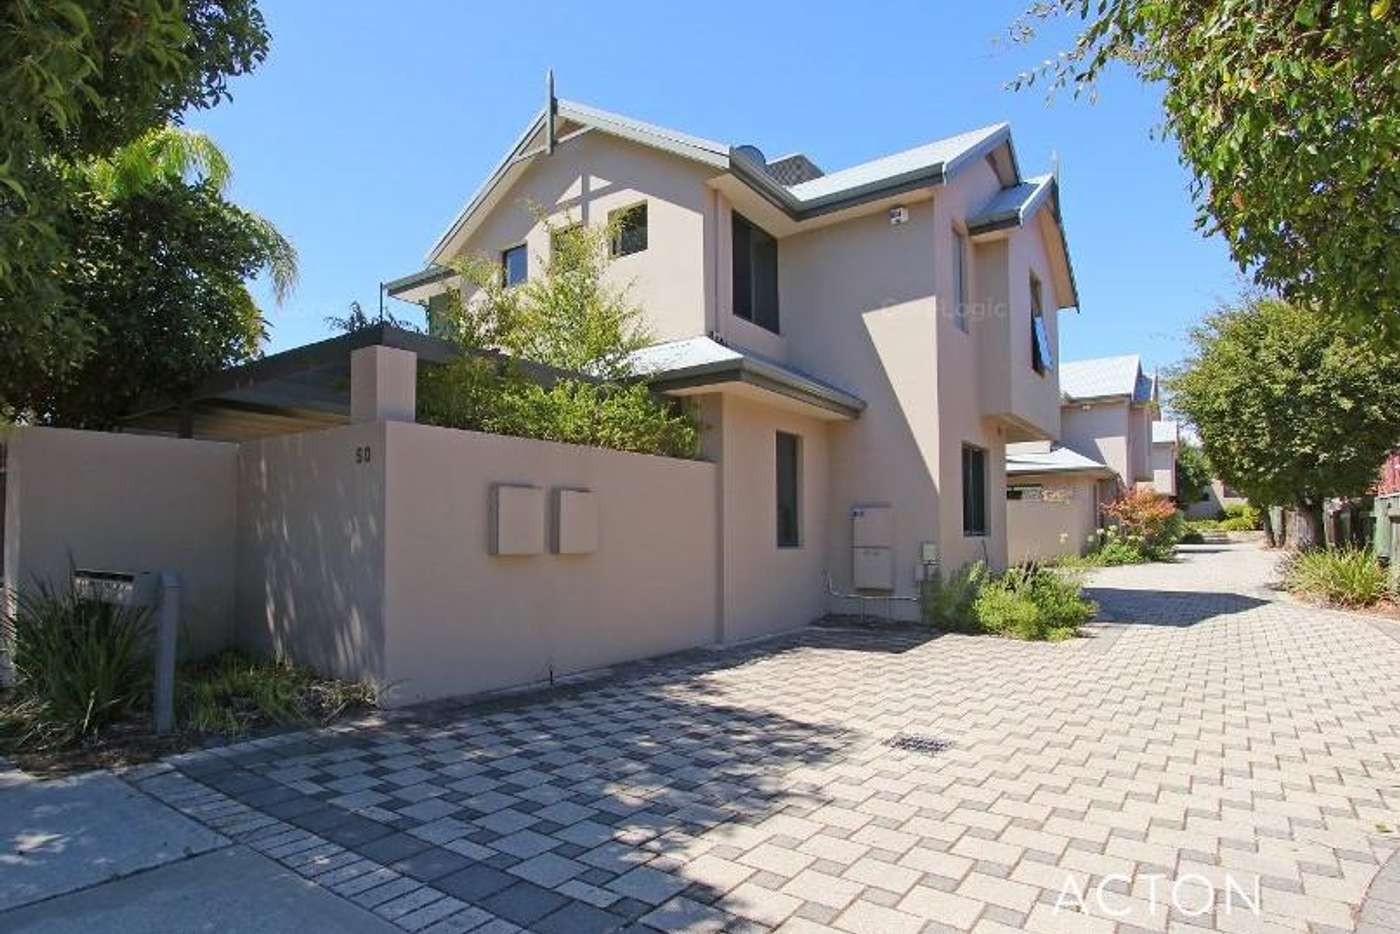 Main view of Homely house listing, 1/50 Coode Street, South Perth WA 6151